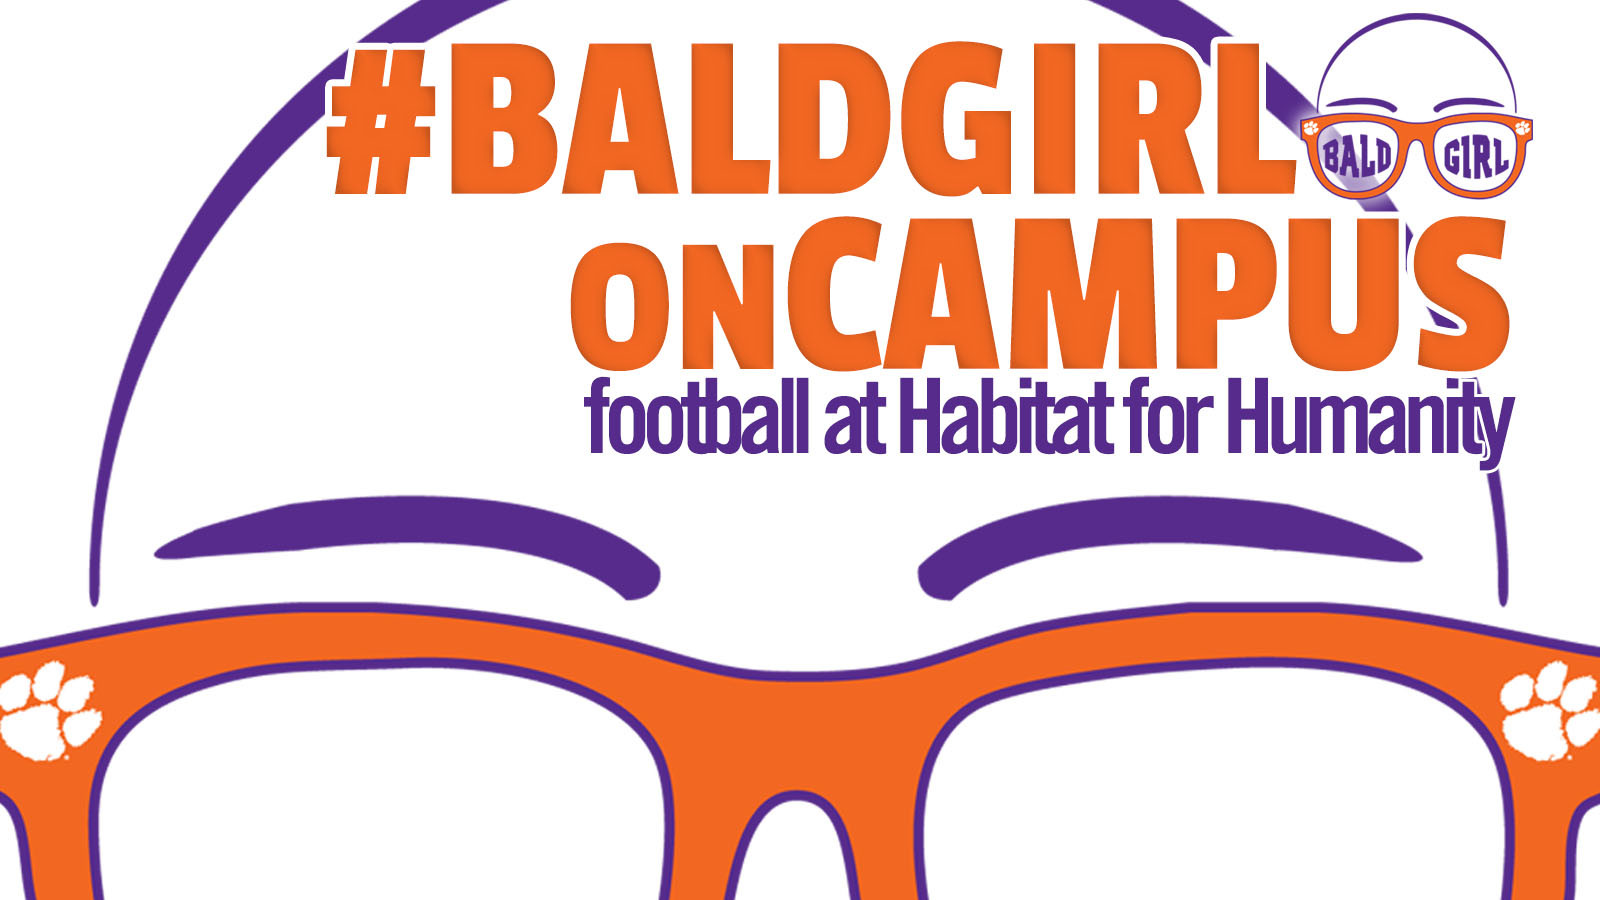 ClemsonTigers.com's Bald Girl on Campus: Football at Habitat for Humanity